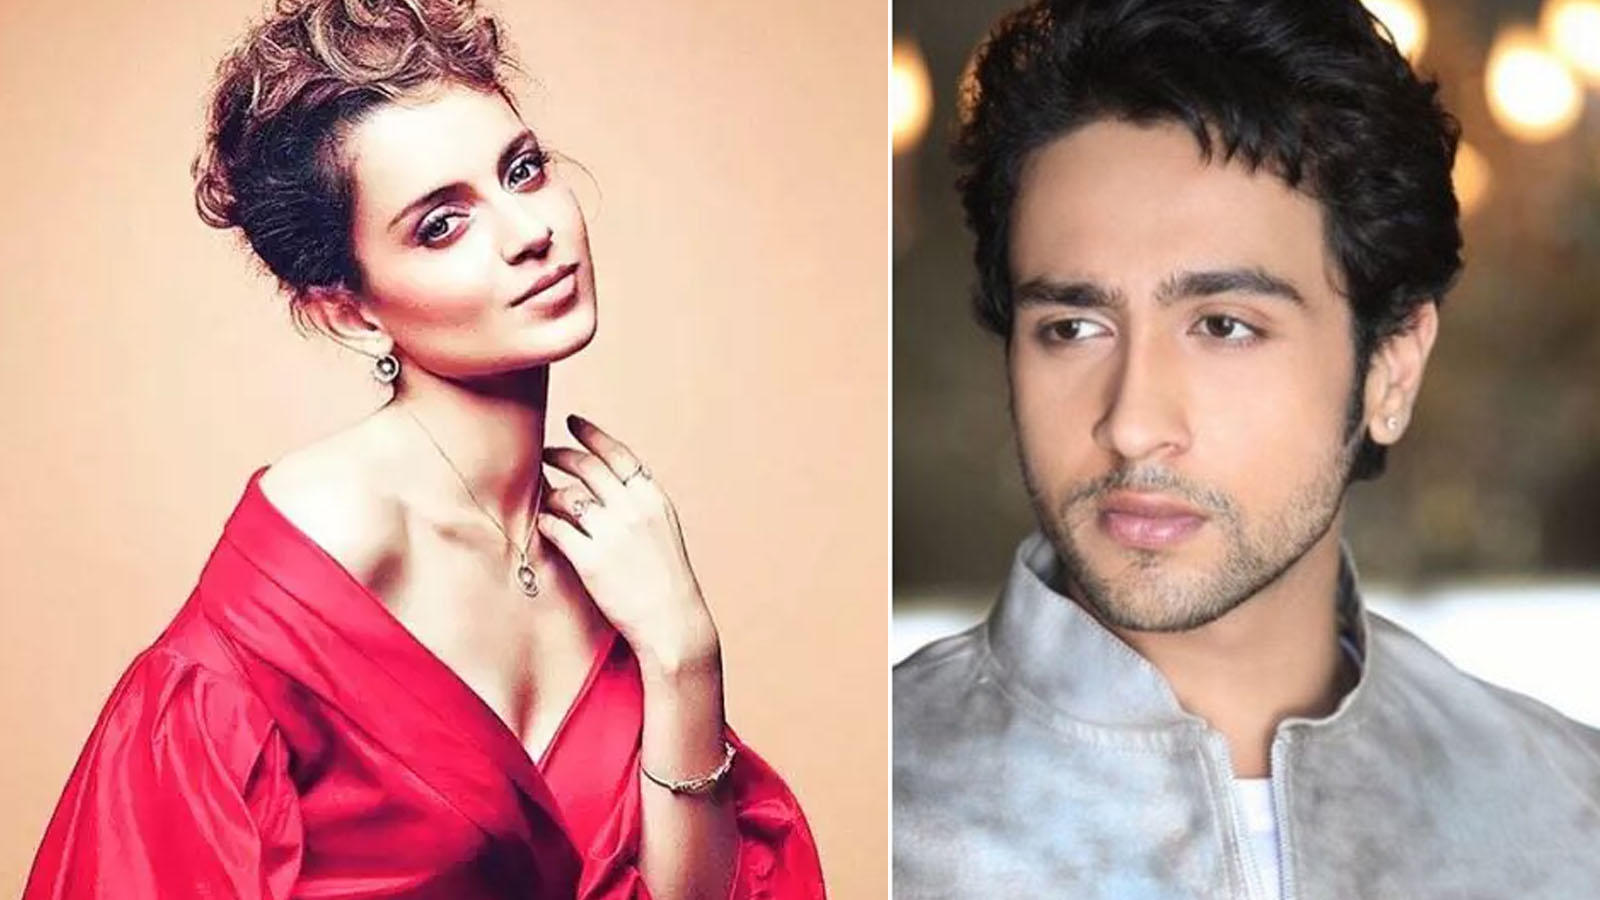 adhyayan-summan-says-he-respects-ex-gf-kangana-ranaut-she-fought-powerful-people-of-the-industry-to-make-a-name-for-herself